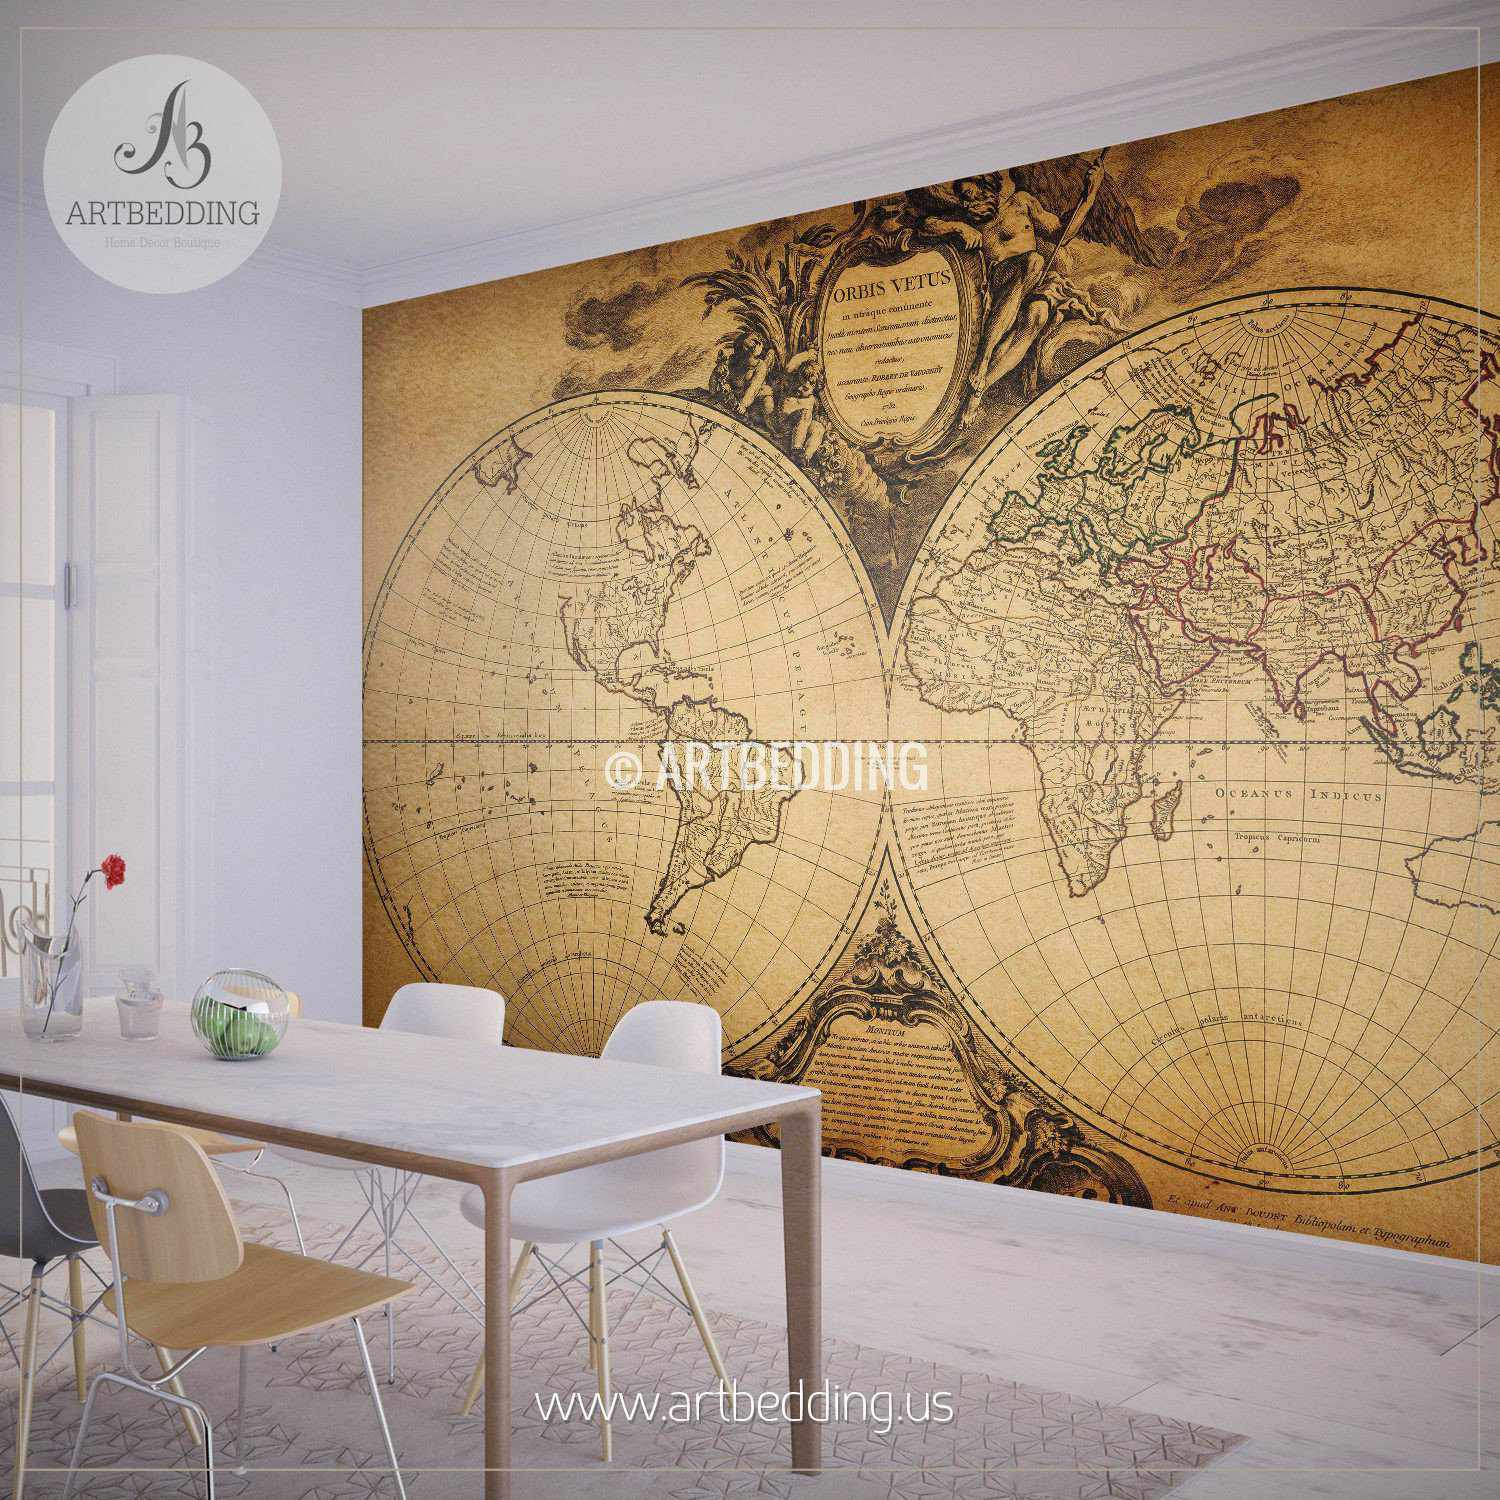 Vintage map wall mural self adhesive photo mural artbedding for Antique wallpaper mural